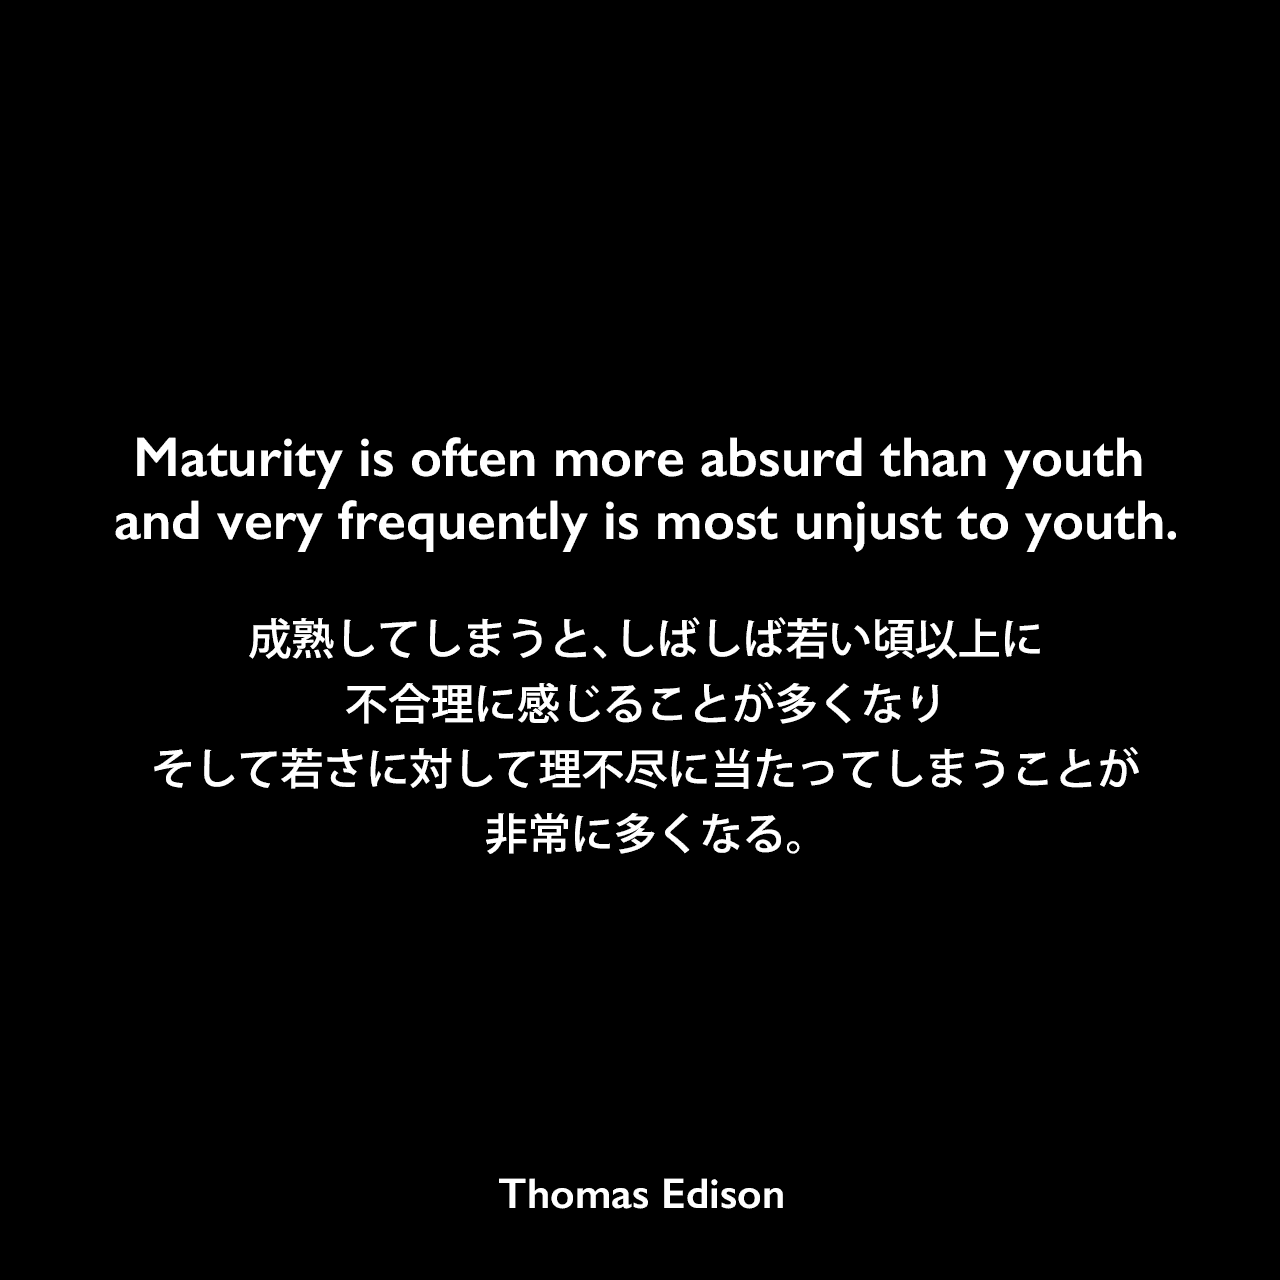 Maturity is often more absurd than youth and very frequently is most unjust to youth.成熟してしまうと、しばしば若い頃以上に不合理に感じることが多くなり、そして若さに対して理不尽に当たってしまうことが非常に多くなる。Thomas Edison